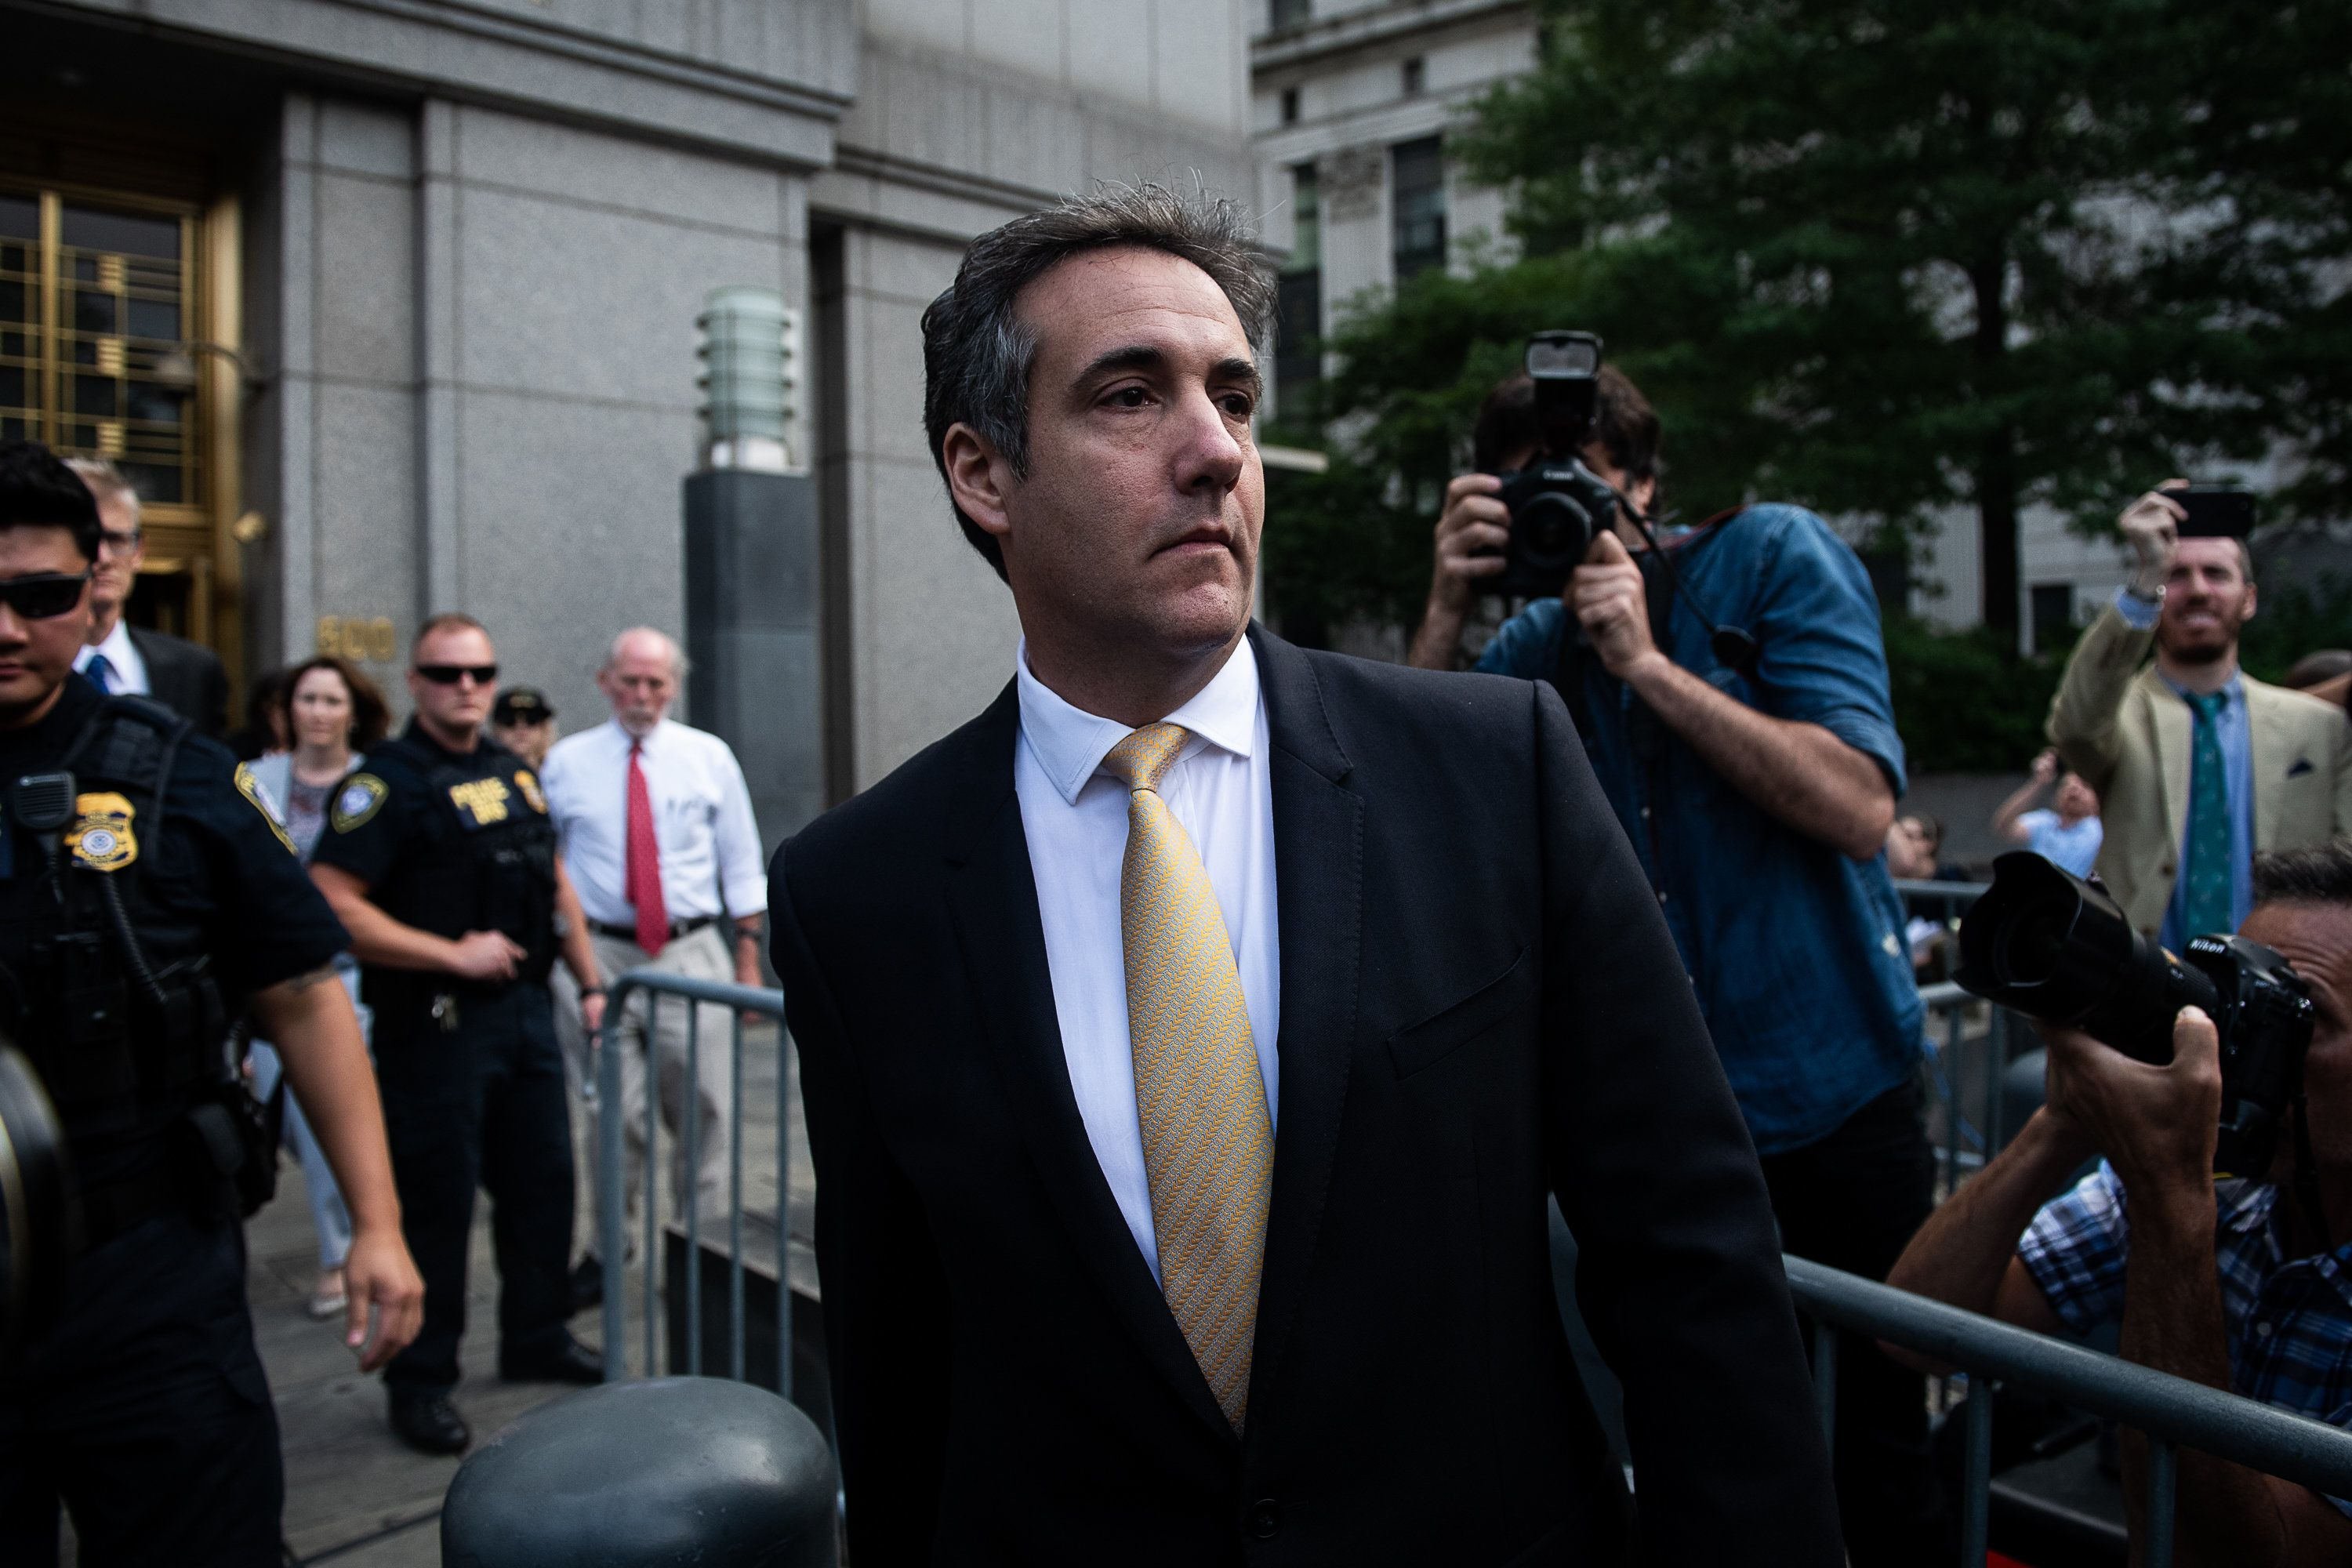 FILE: Michael Cohen, former personal lawyer to U.S. President Donald Trump, exits from federal court in New York, U.S., on Tuesday, Aug. 21, 2018. Sunday, January 20, 2019, marks the second anniversary of U.S. President Donald Trump's inauguration. Our editors select the best archive images looking back over Trumps second year in office. Photographer: Mark Kauzlarich/Bloomberg via Getty Images